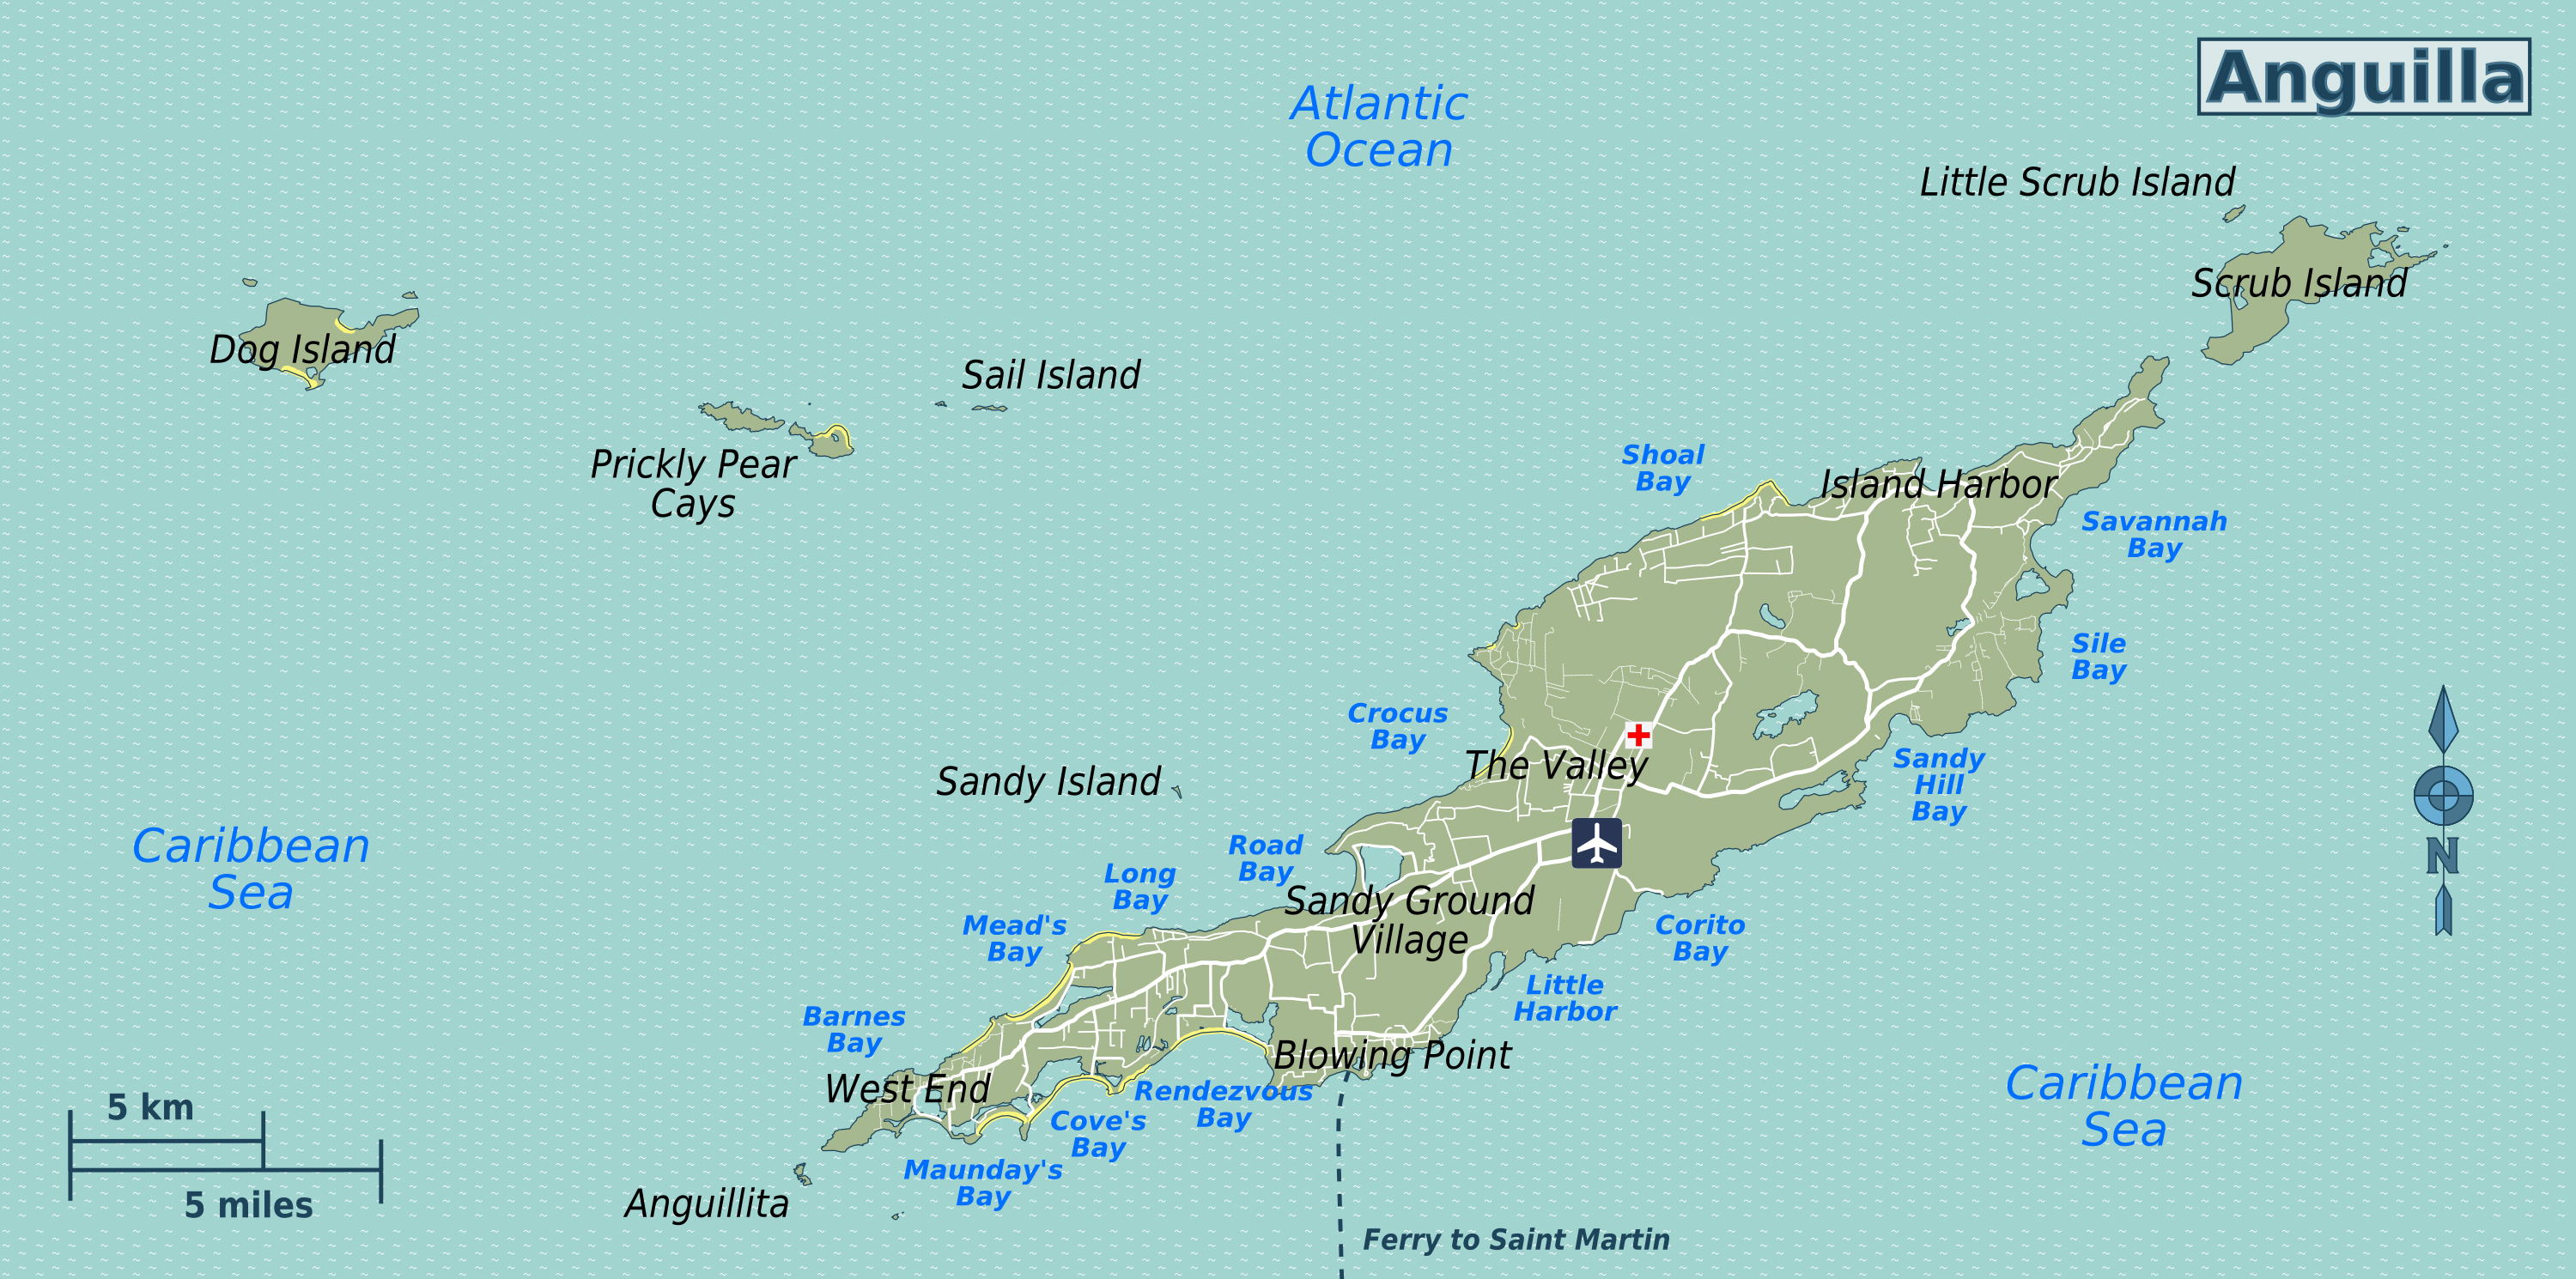 Detailed Road Map Of Anguilla Anguilla Detailed Road Map - Map of anguilla